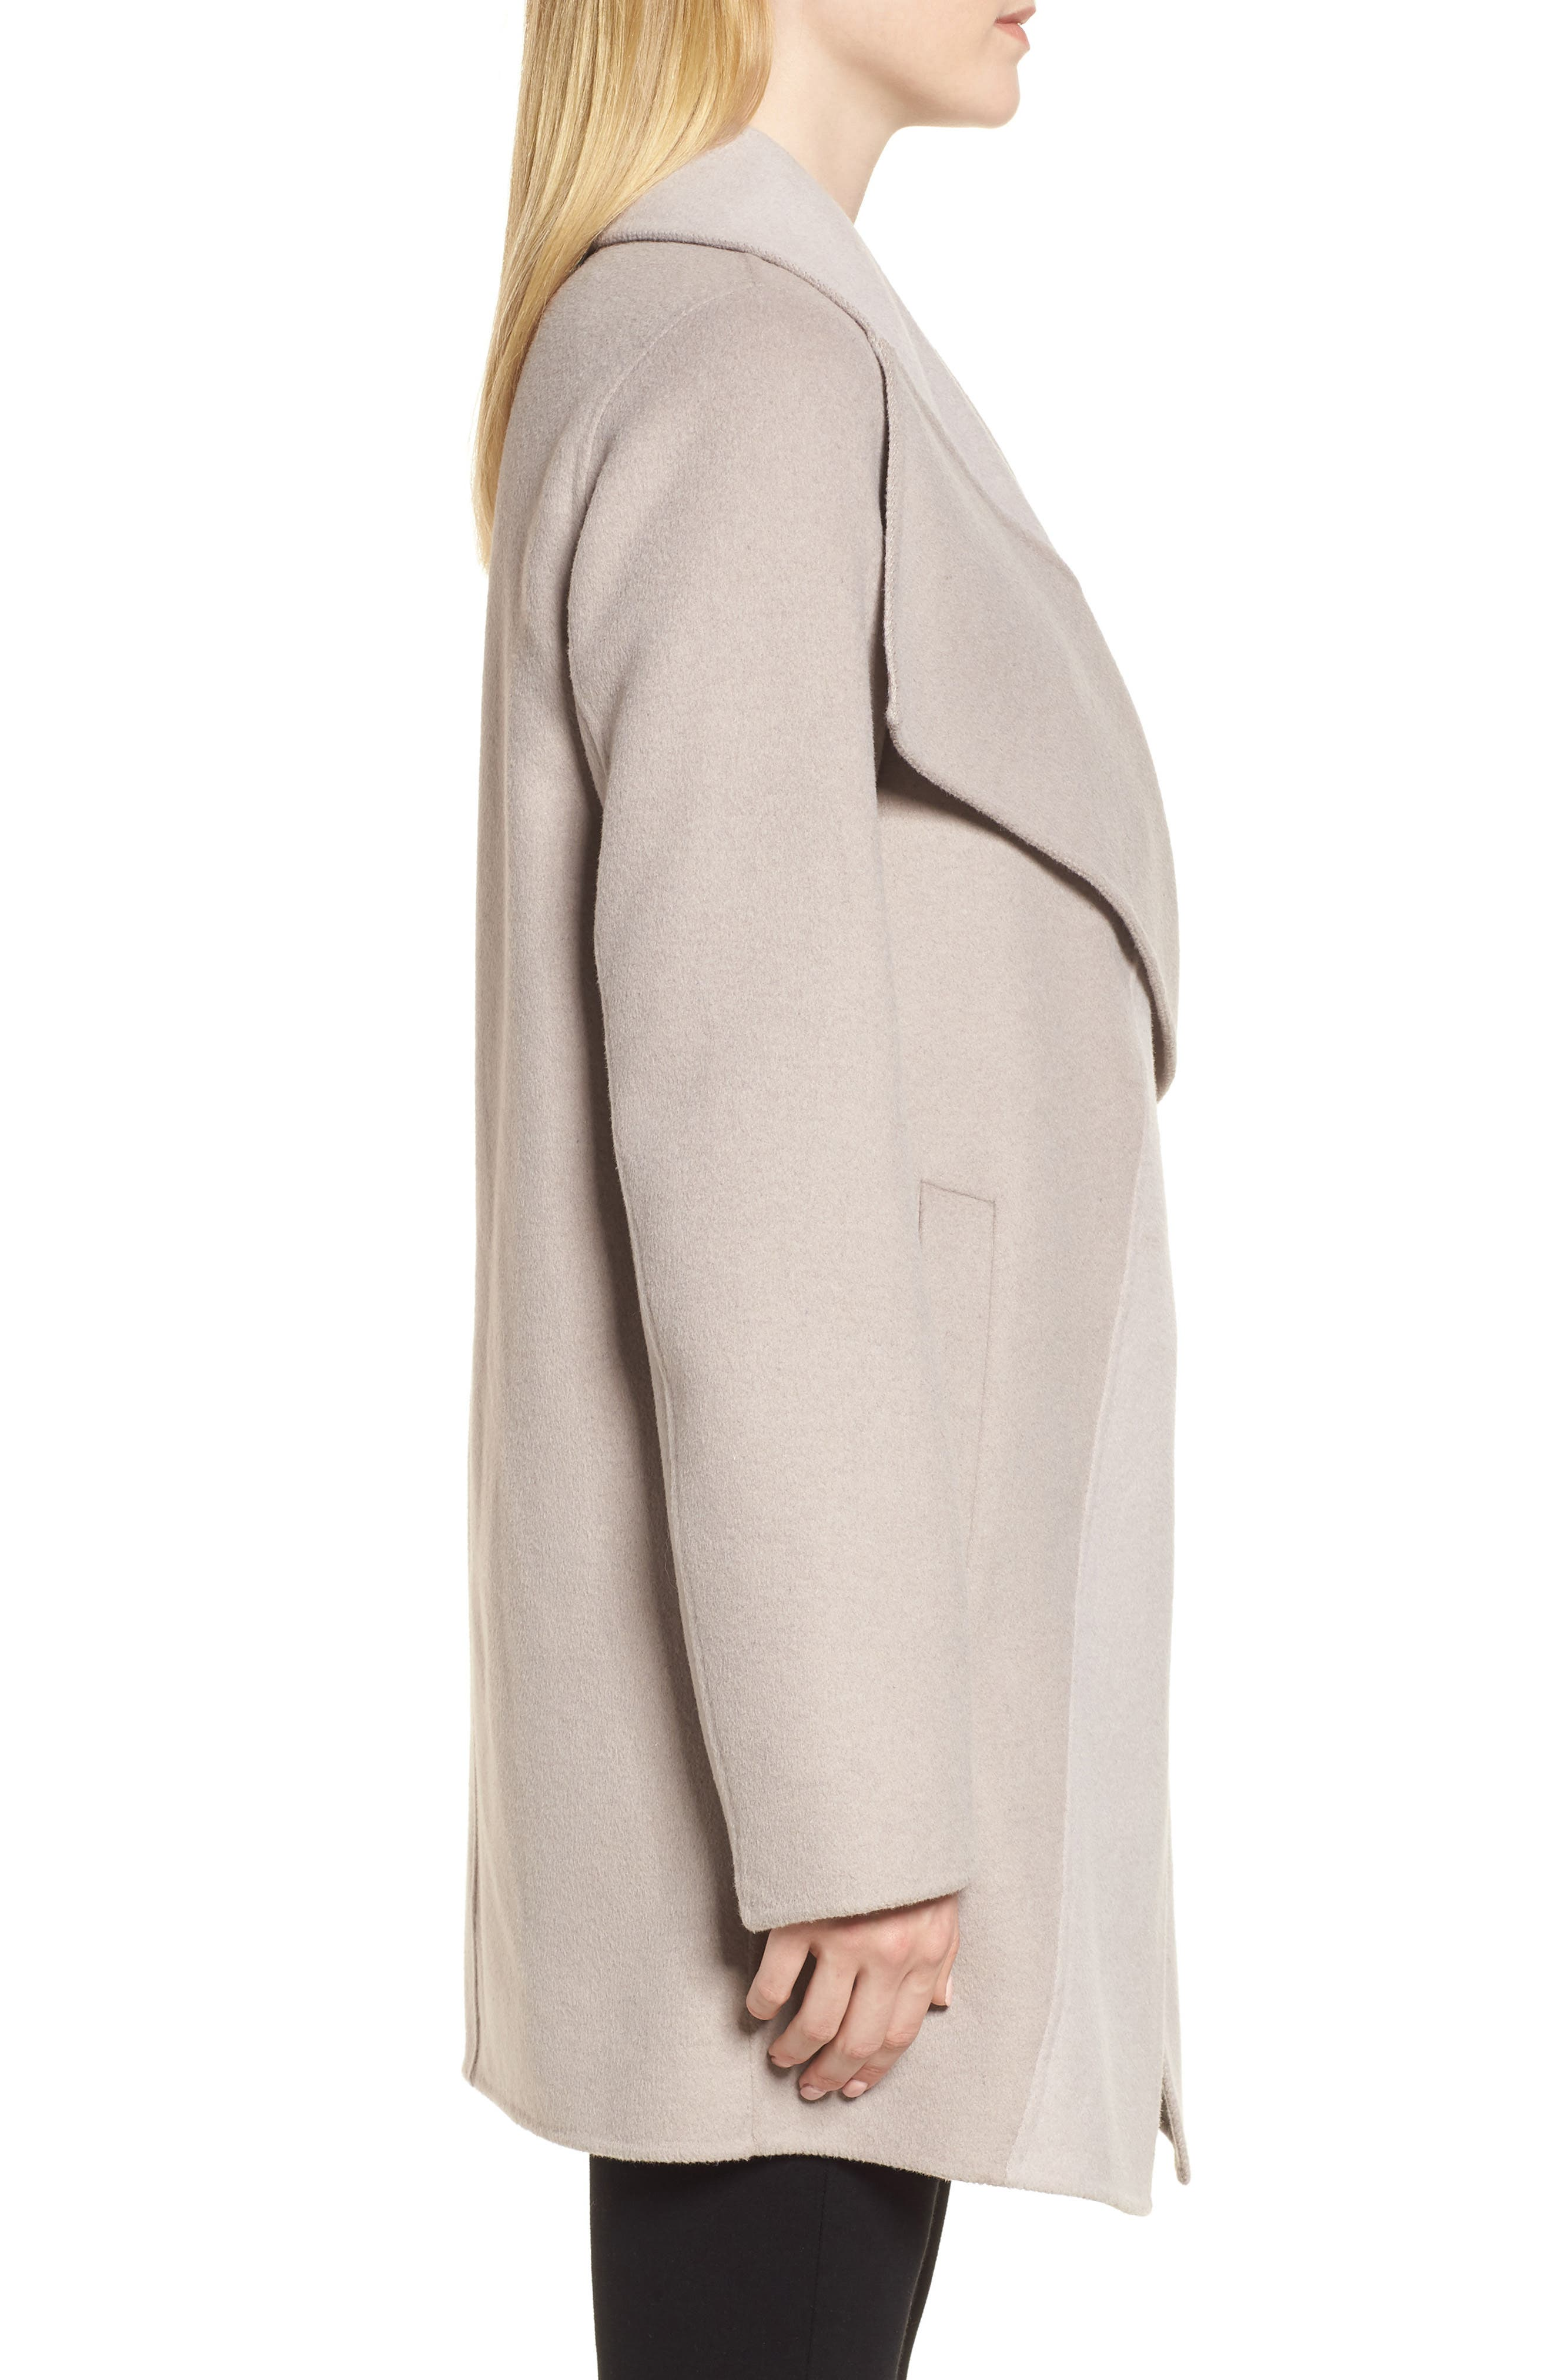 Nicky Double Face Wool Blend Oversize Coat,                             Alternate thumbnail 3, color,                             OYSTER BAY/ BROWN SUGAR